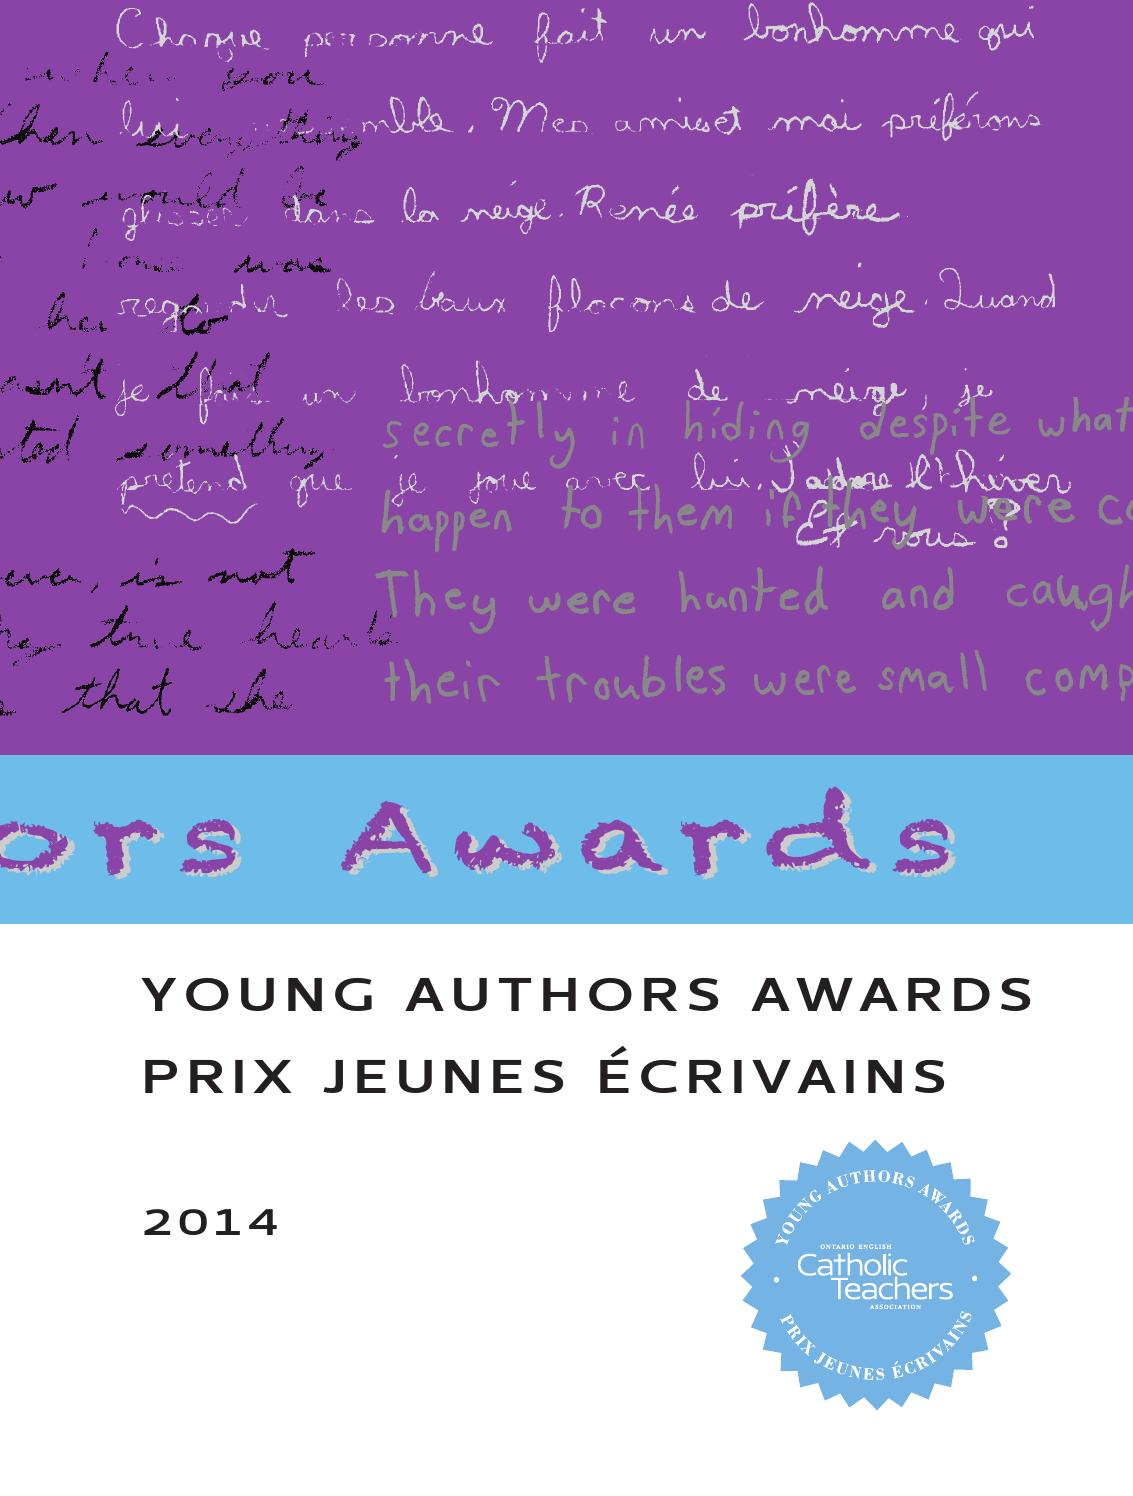 What has caused the sudden surge in the number of young writers?